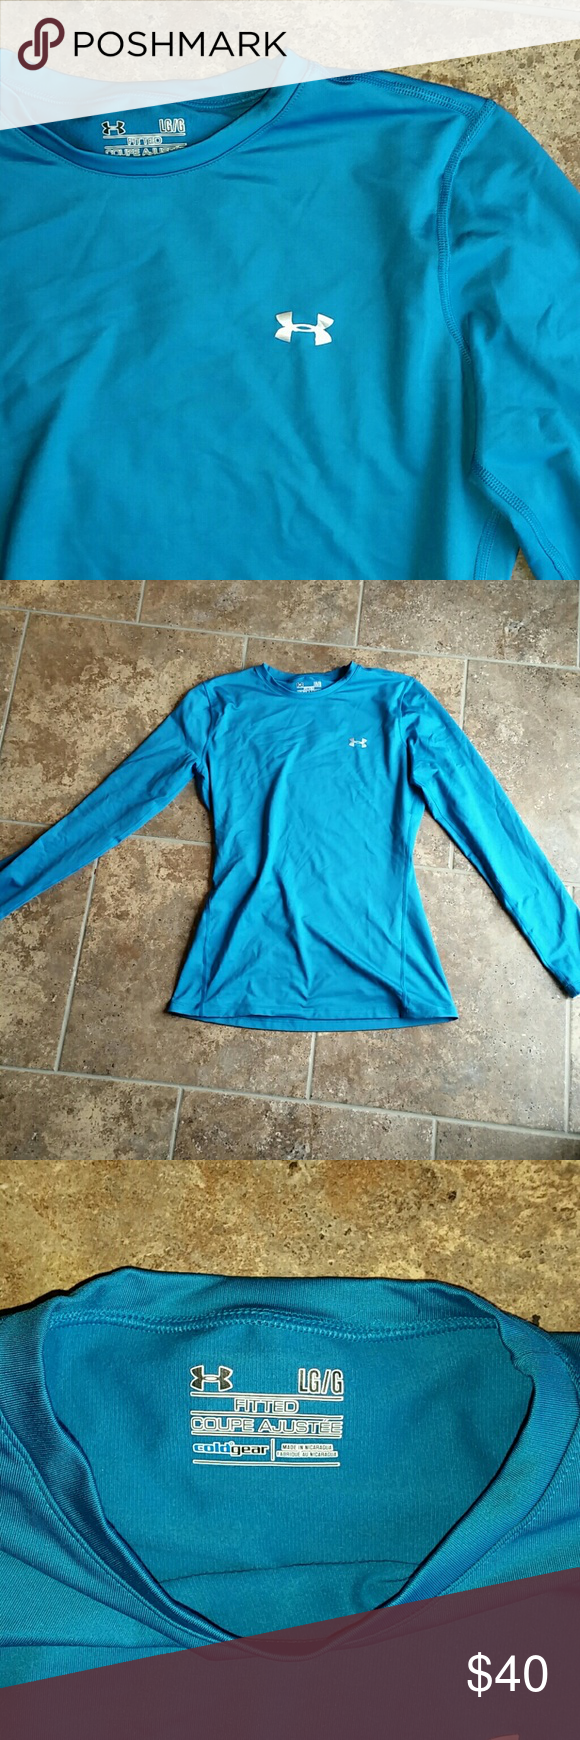 Womenus fitted coupe cold gear under armour shirt pinterest